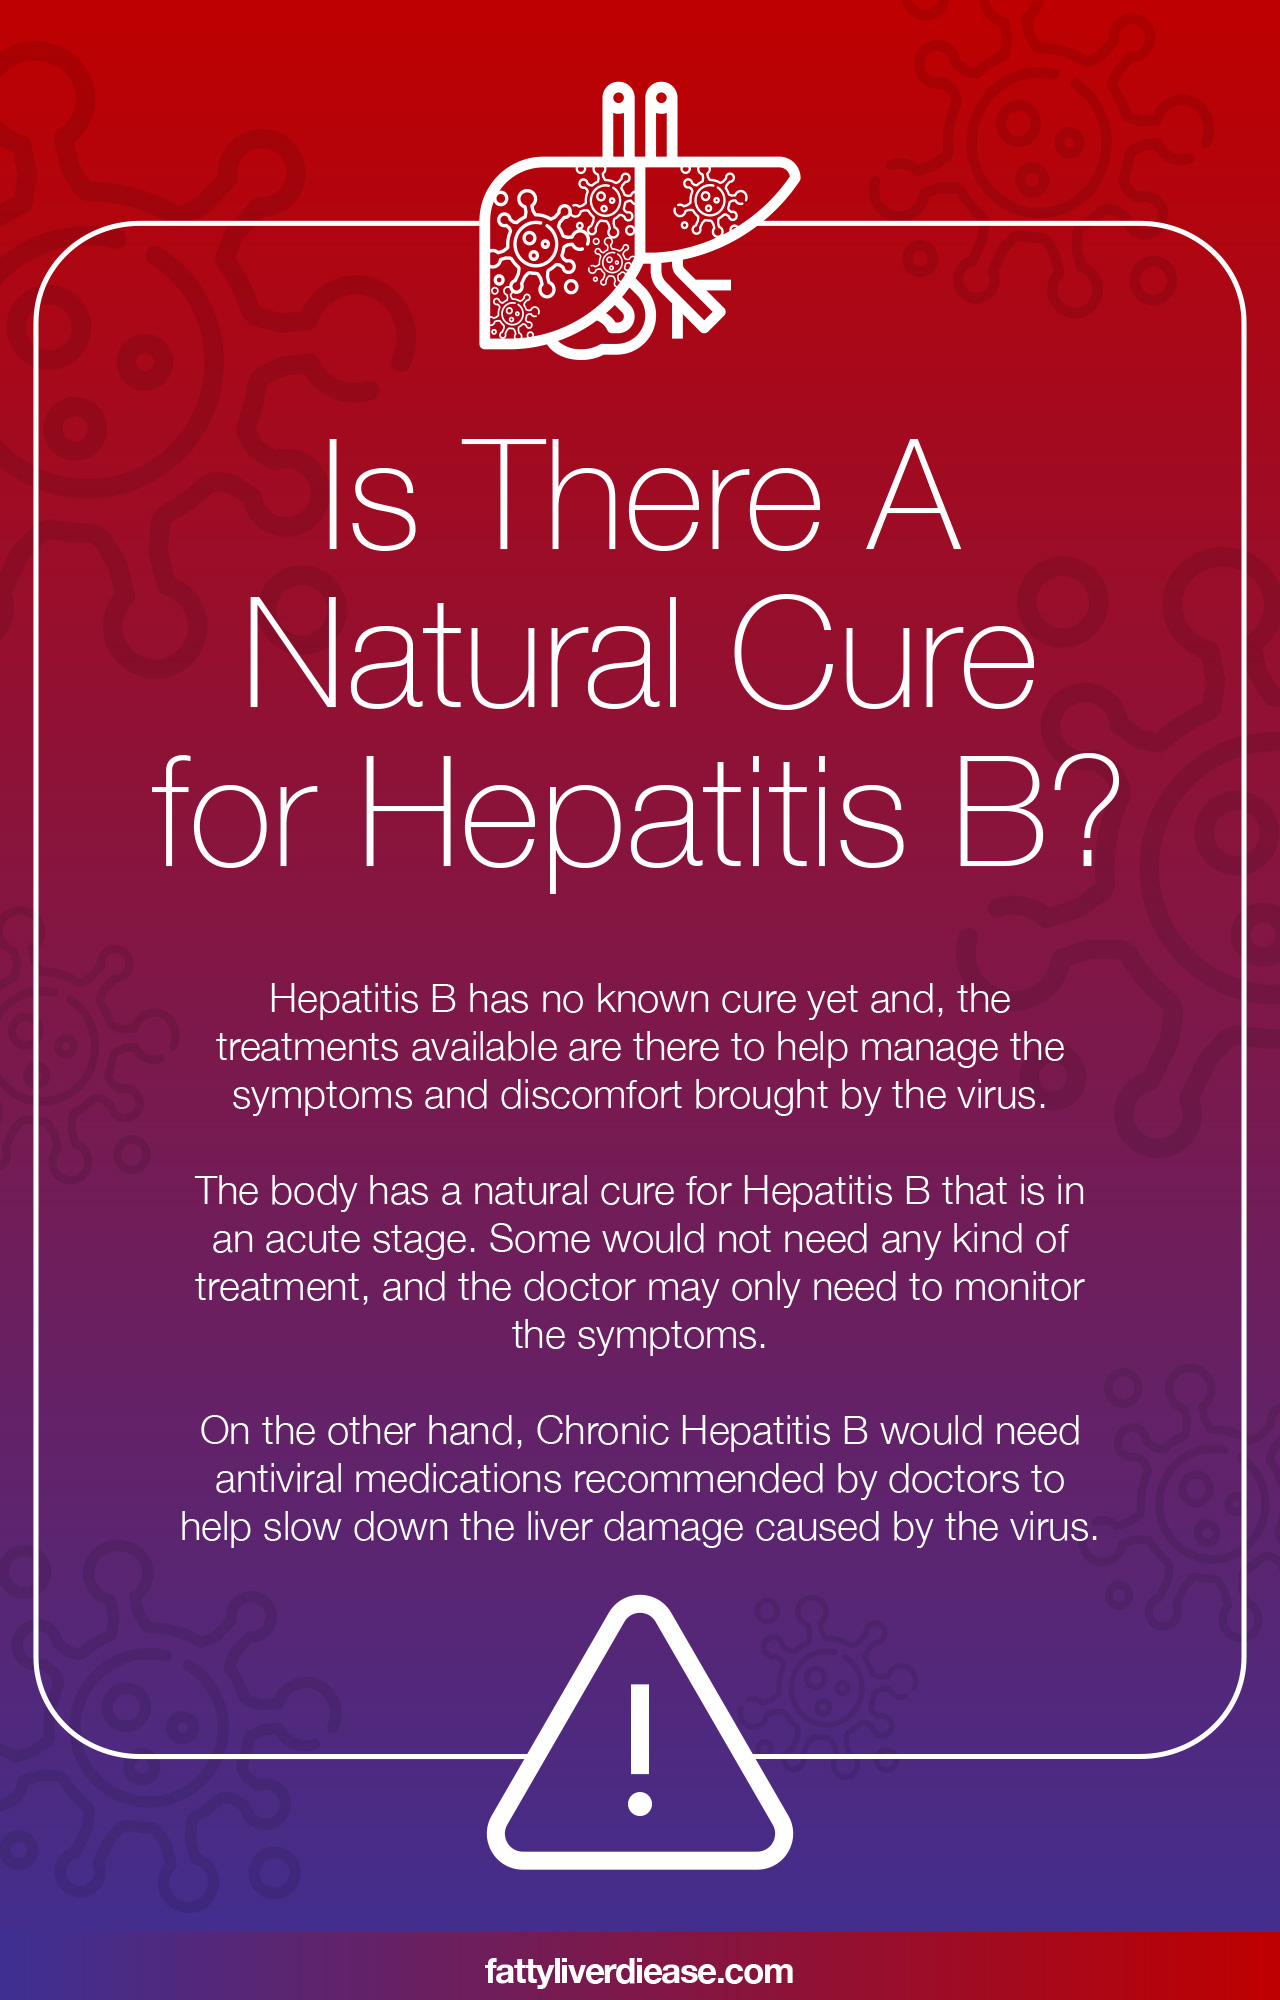 Is There A Natural Cure For Hepatitis B?